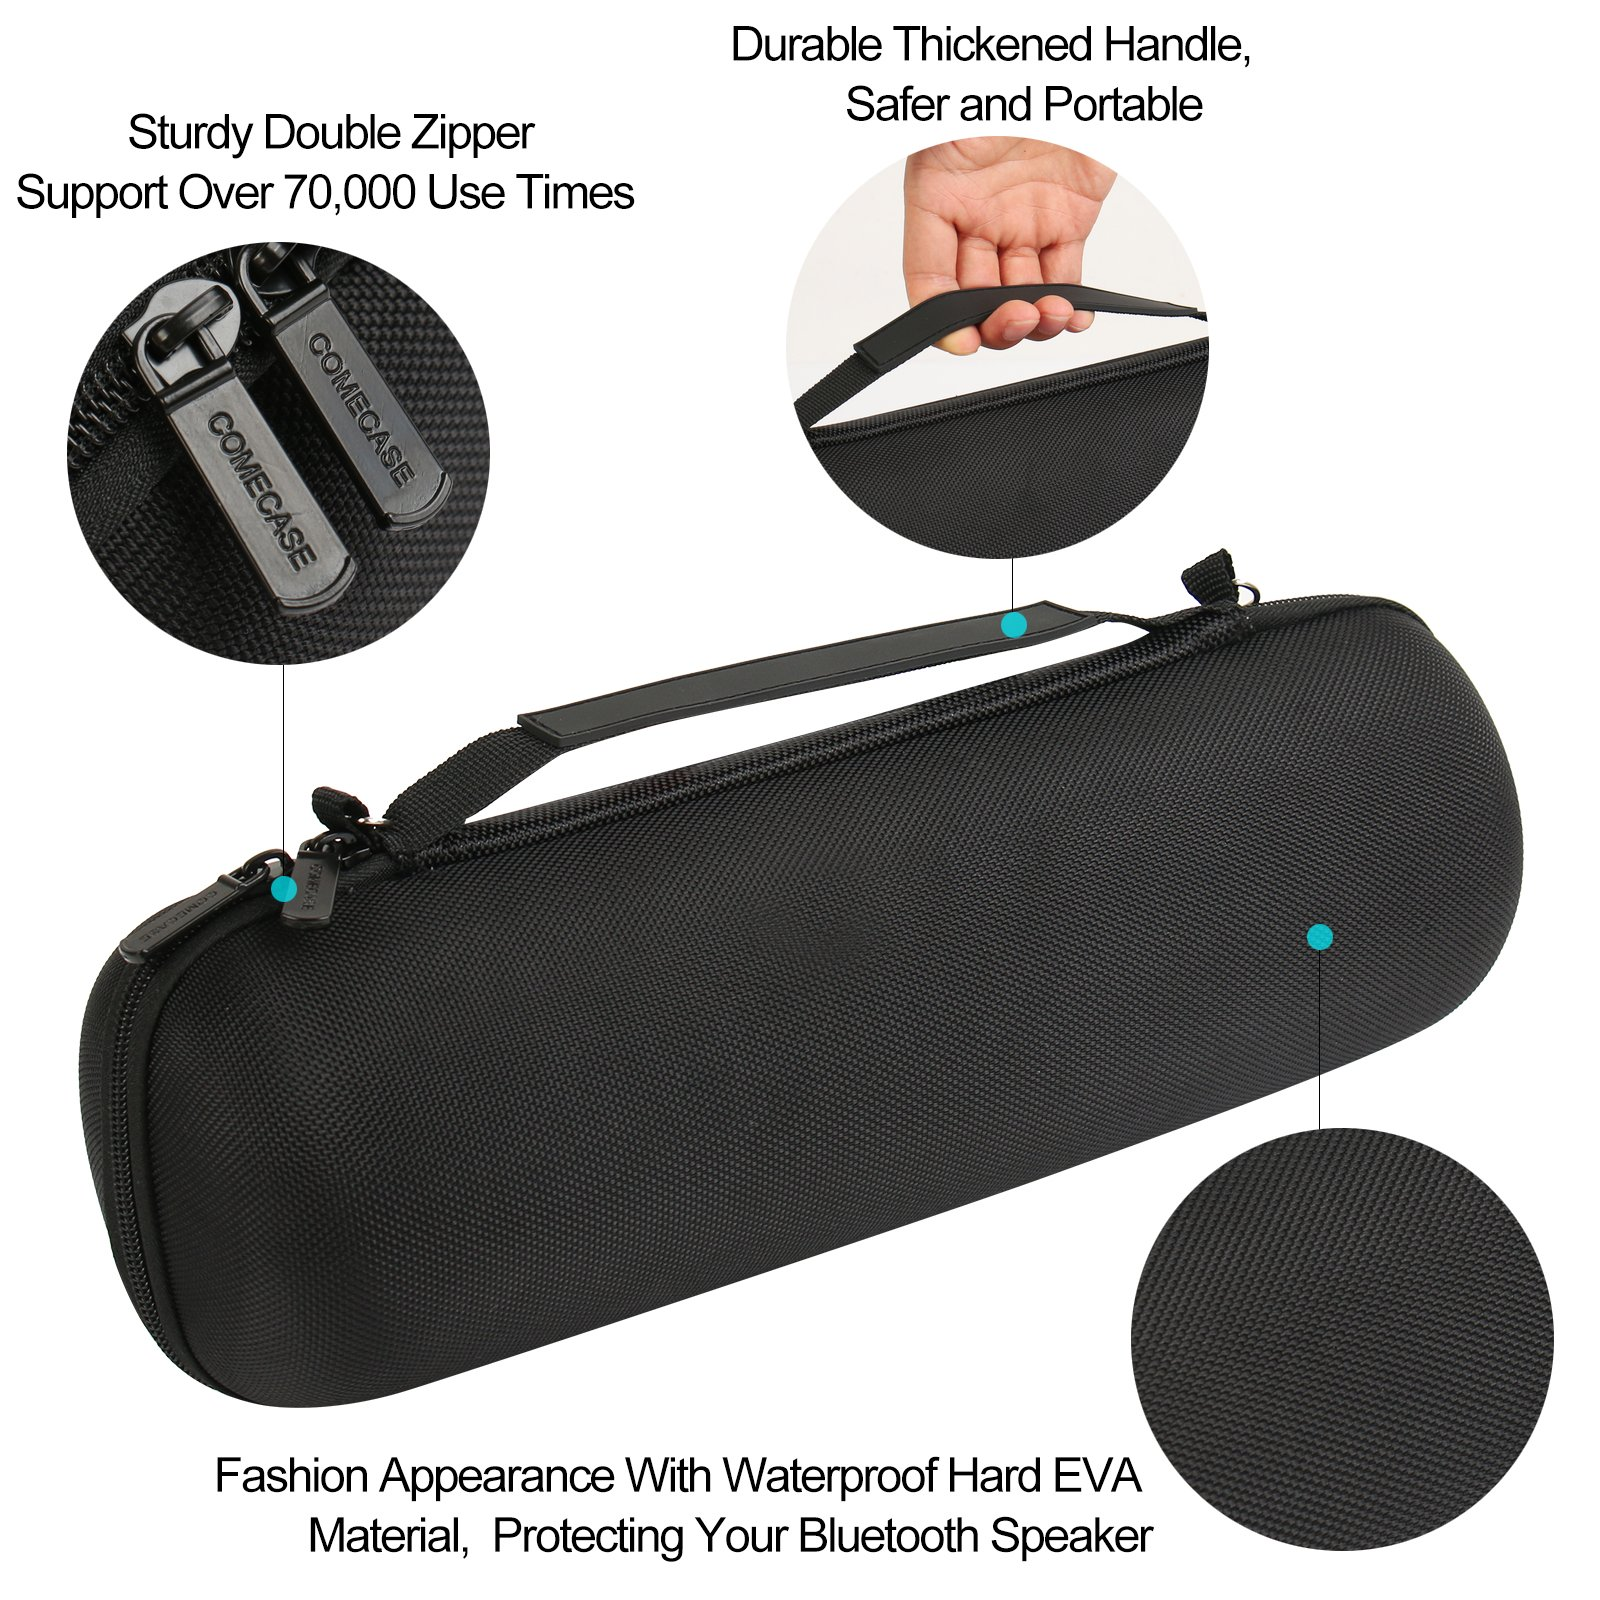 Fits USB Cable and Charger Adapter. COMECASE Carrying Case Storage for JBL Charge 3 JBLCHARGE3BLKAM Waterproof Portable Bluetooth Speaker Speaker is Not Include